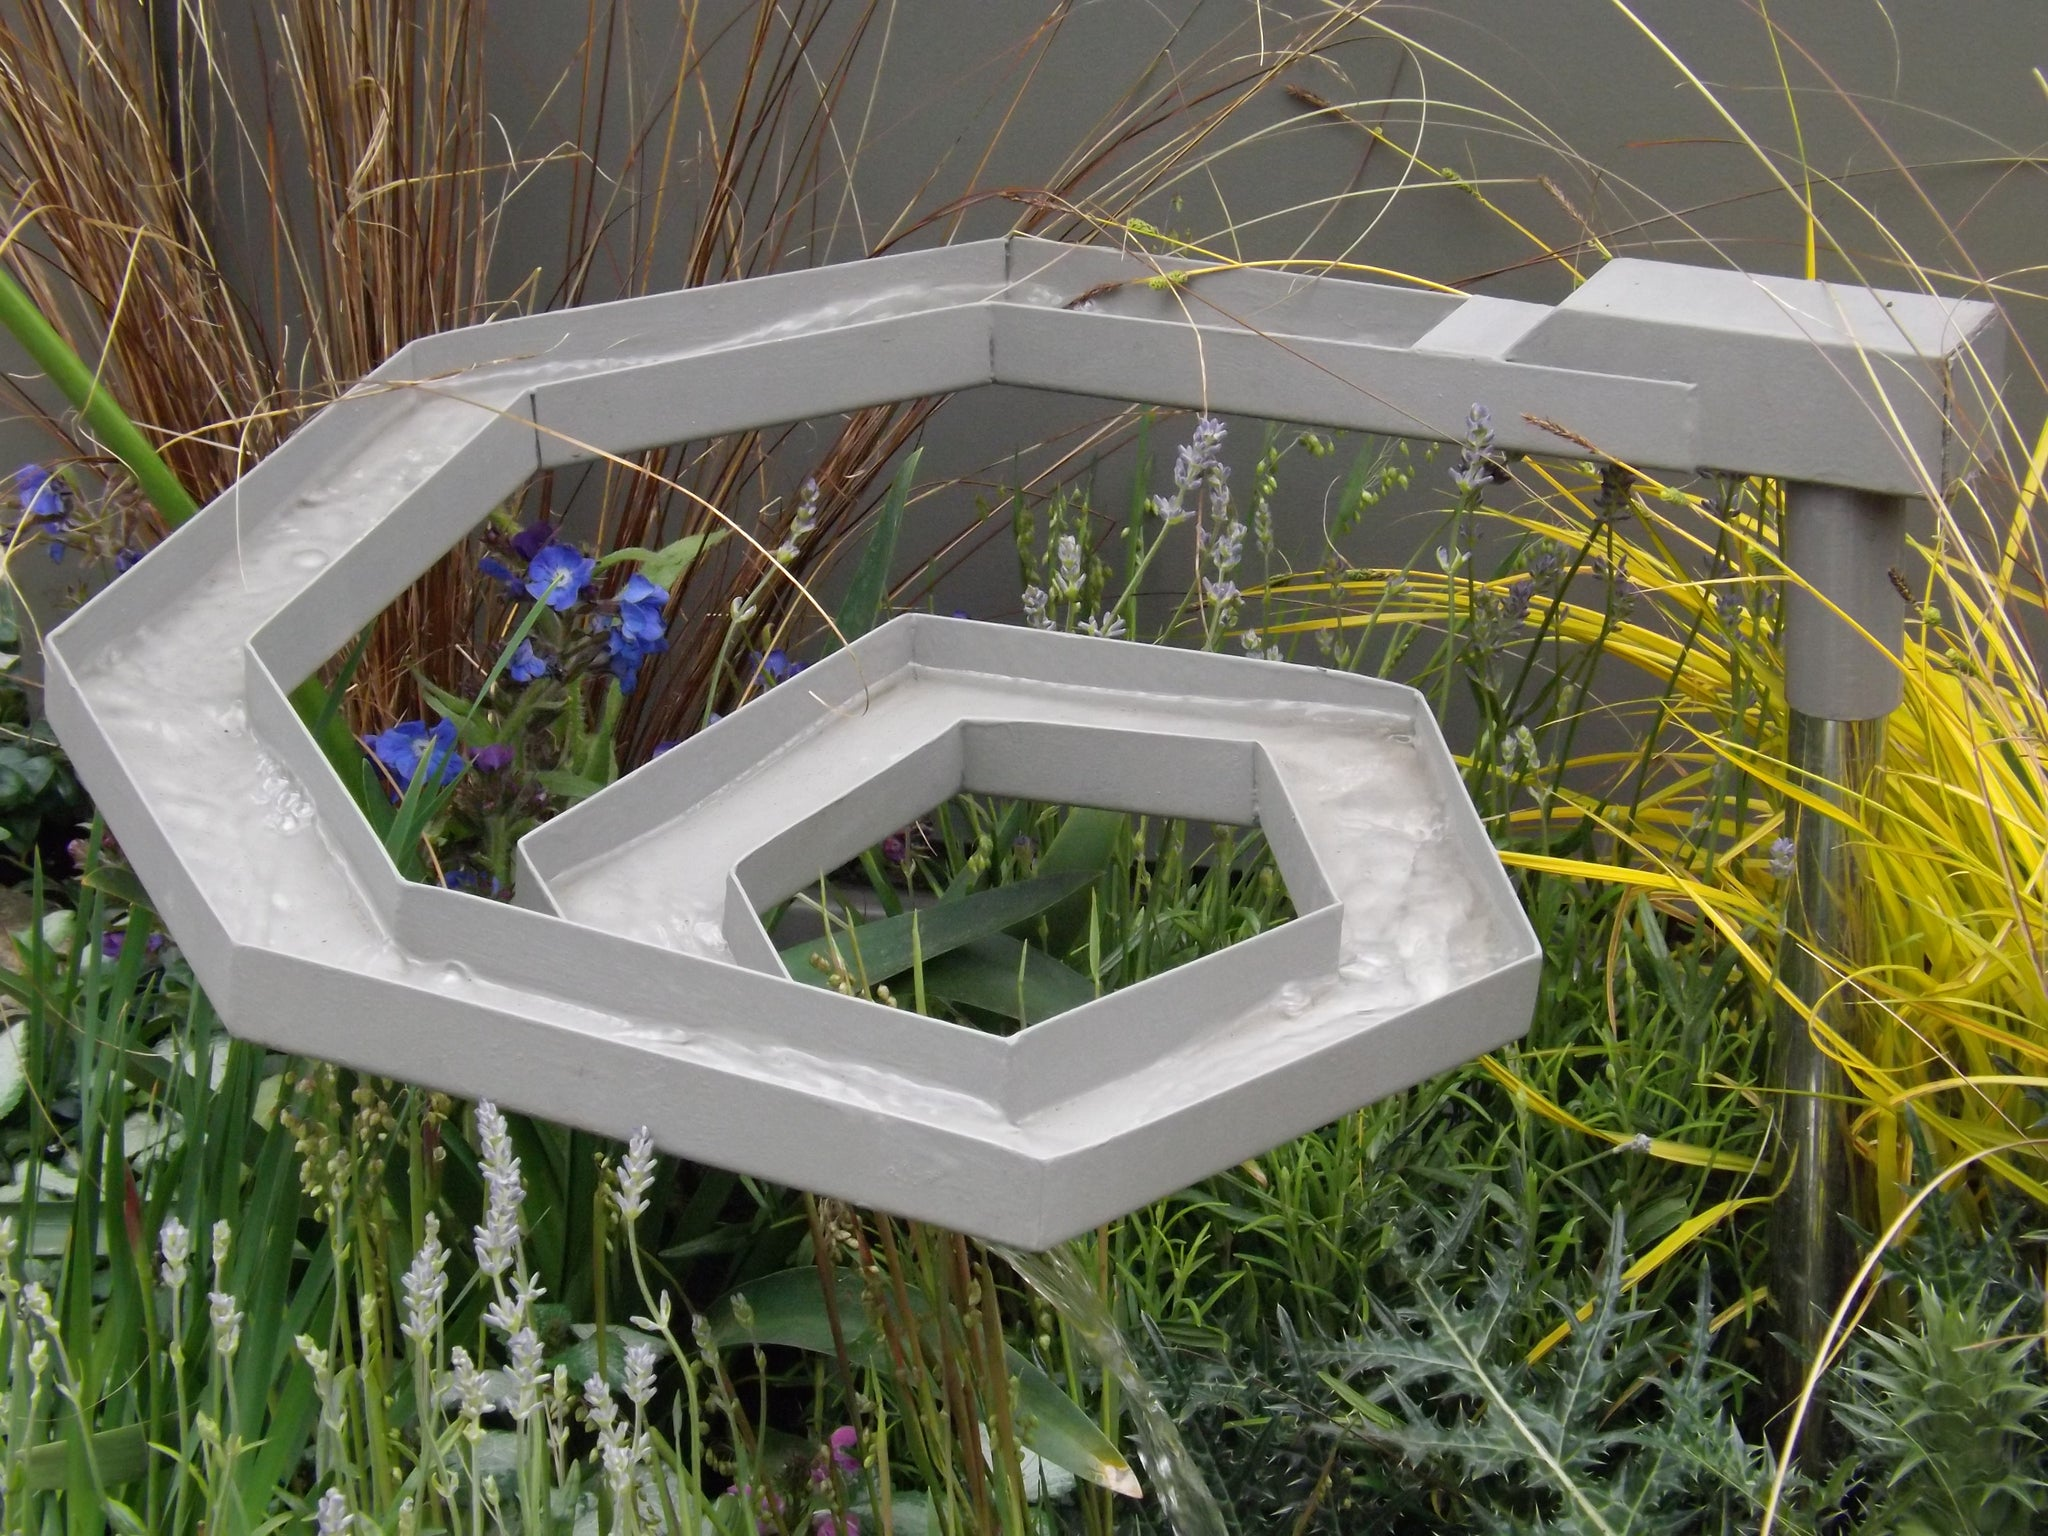 A spiral rill echoes the angular metal elsewhere in the garden